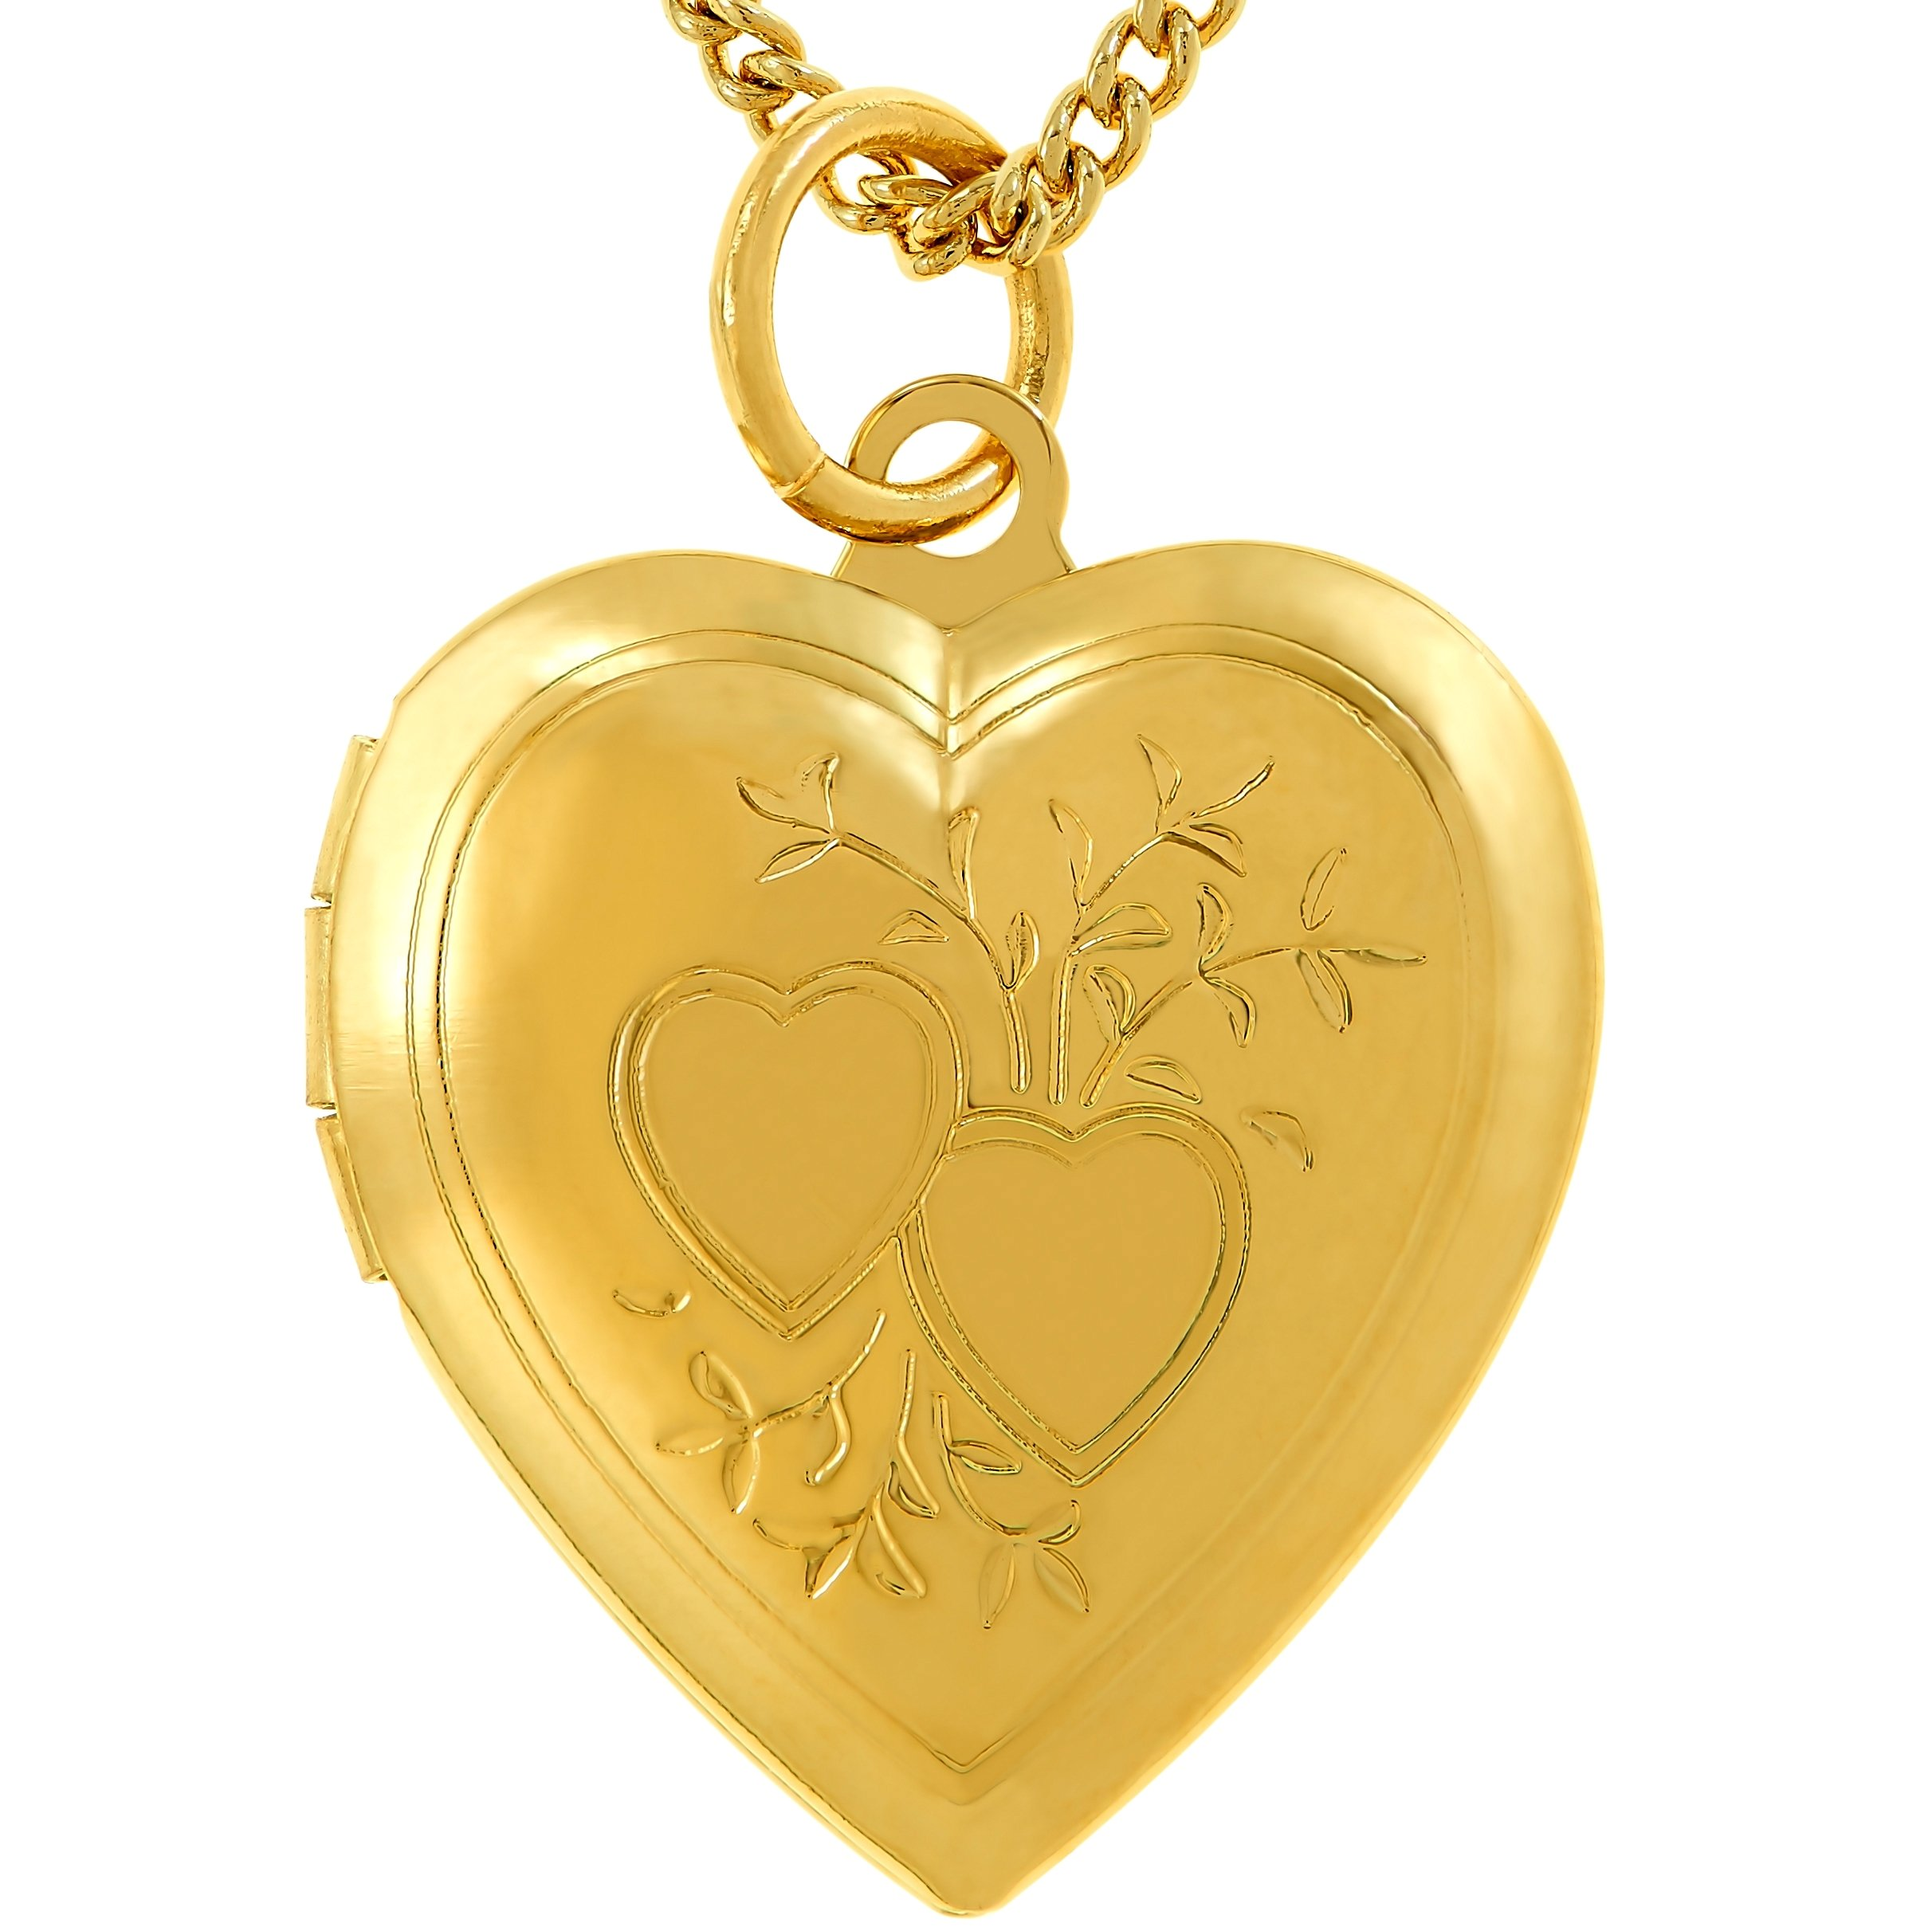 Lifetime Jewelry Photo Locket for Women and Girls [ Two Hearts ] - 20X More Real 24k Gold Plating Than Other Heart Locket Necklaces That Hold Pictures (Yellow Gold Pendant with 18'' Chain) by Lifetime Jewelry